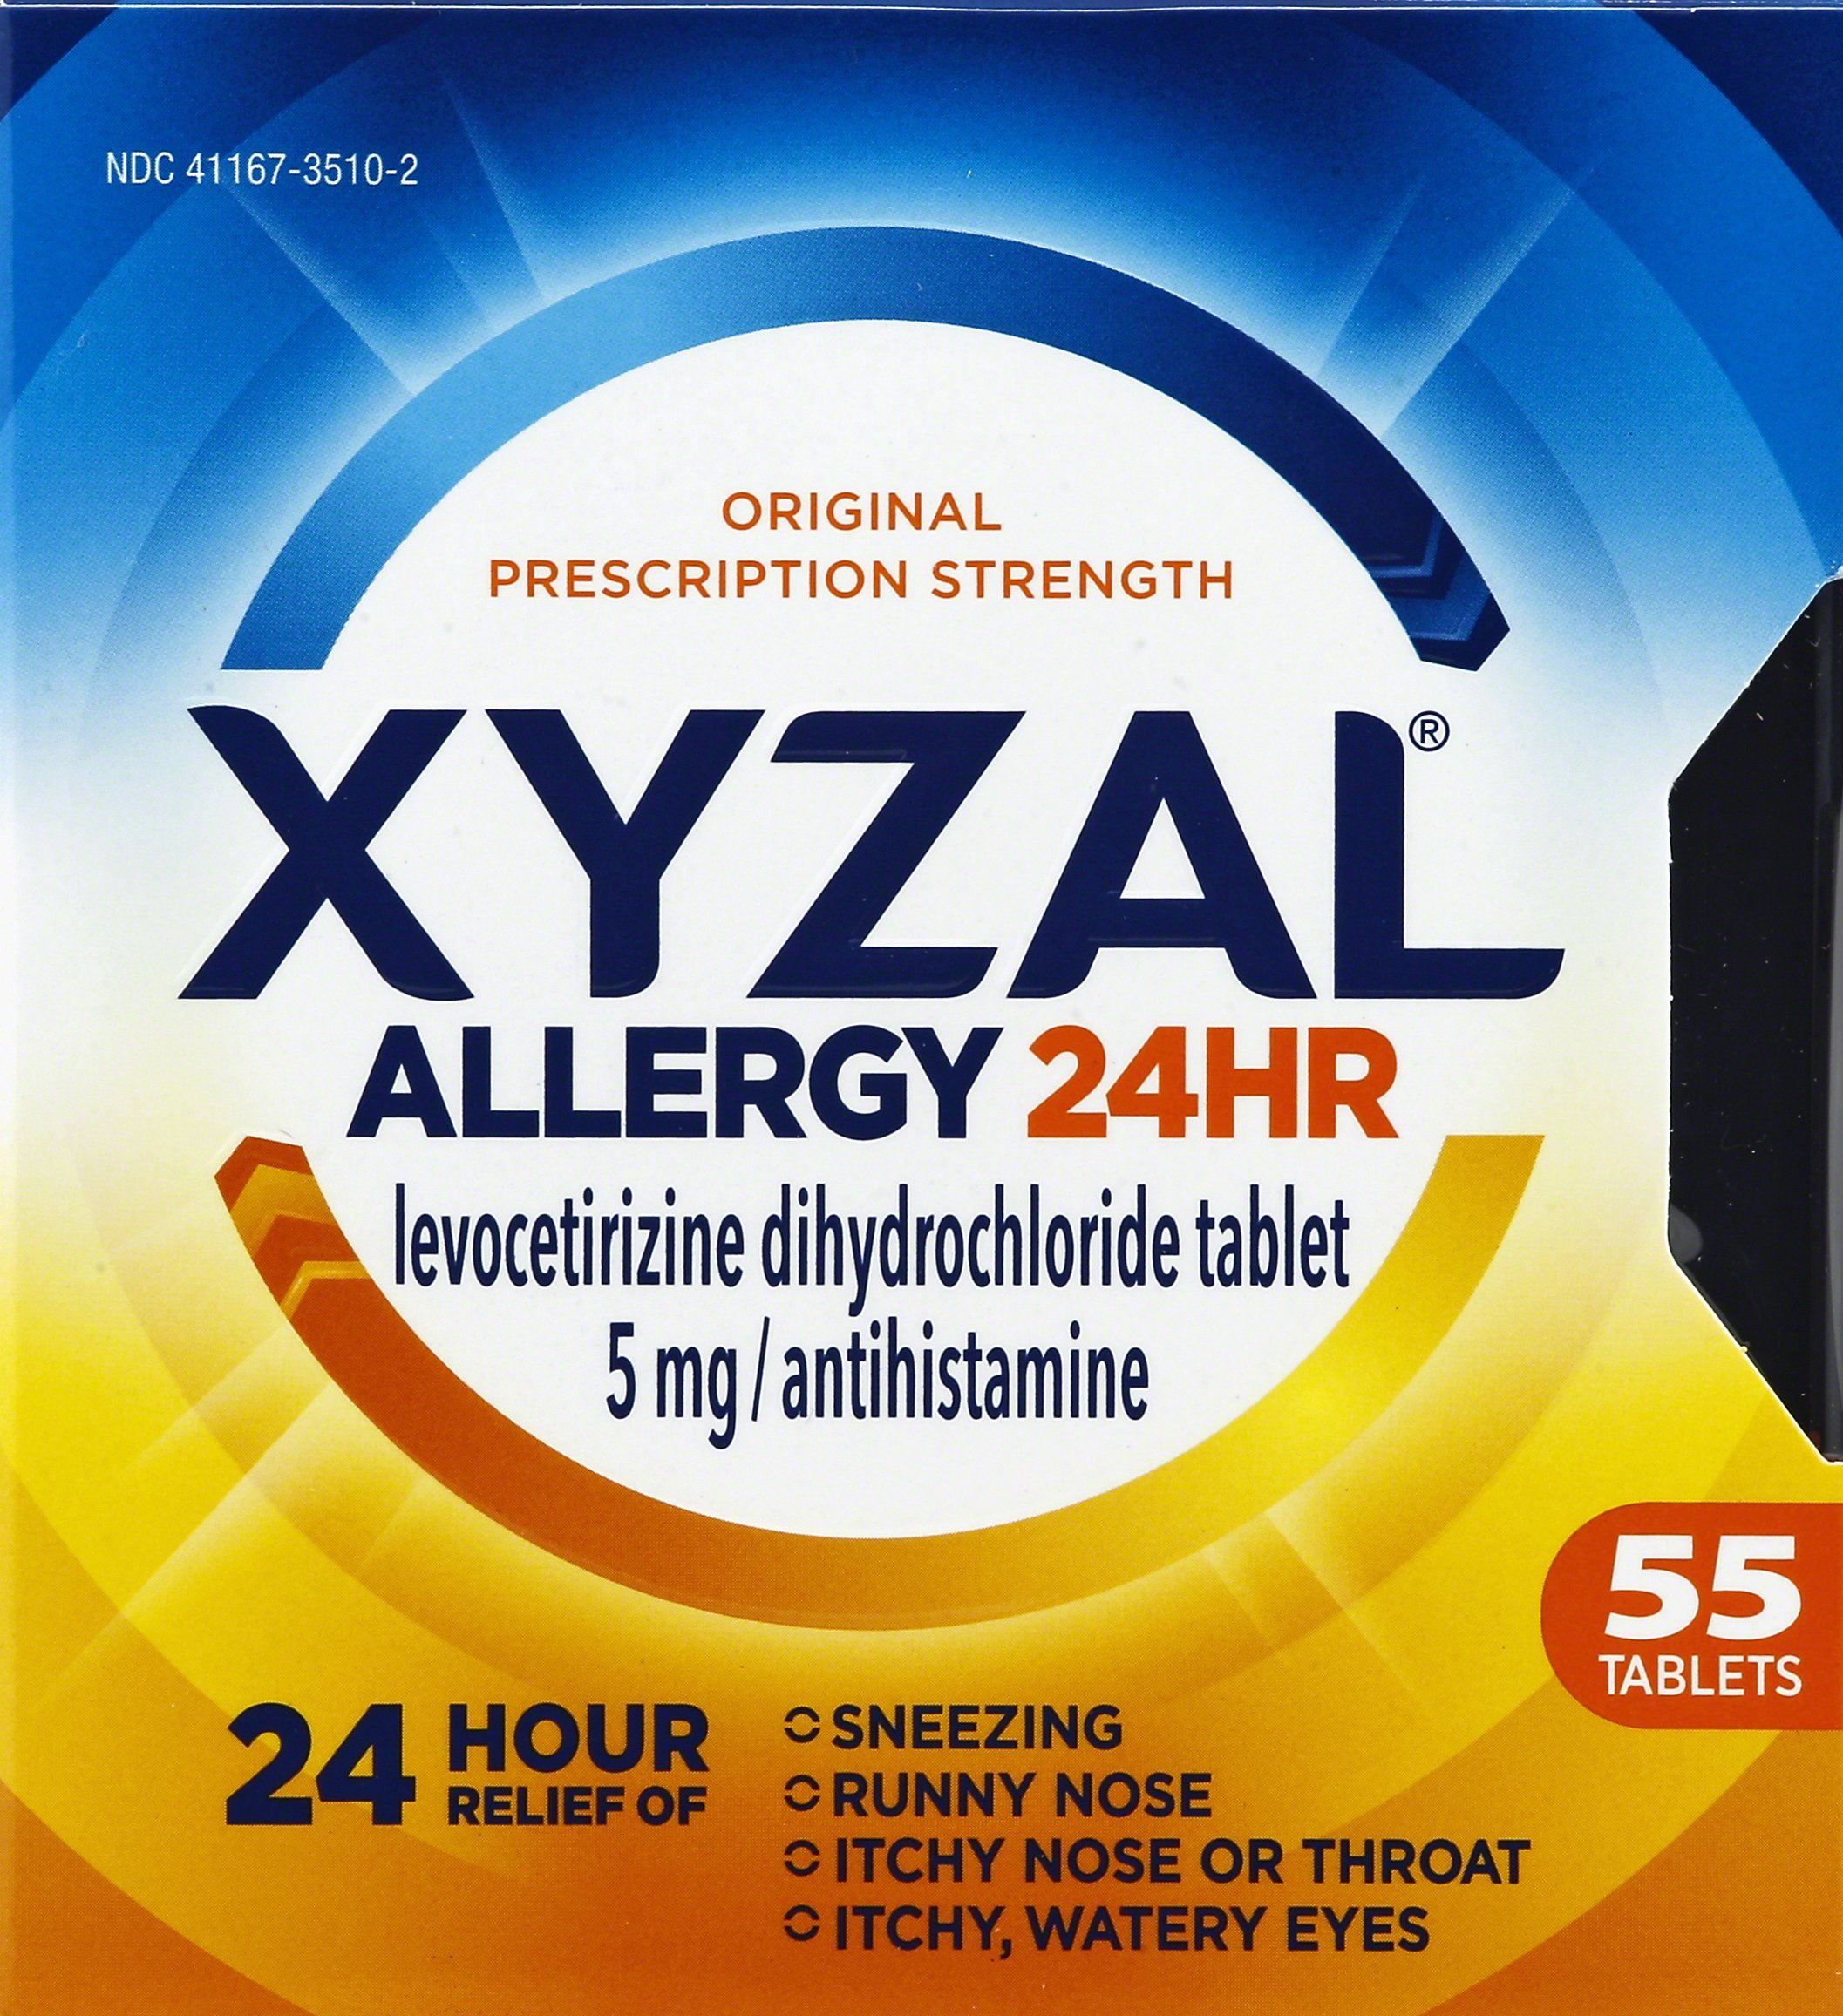 Xyzal Allergy 24 Hour, Allergy Tablet, 55 Count, All Day and Night Relief from Allergy Symptoms Including Sneezing, Runny Nose, Itchy Nose or Throat, Itchy, Watery Eyes by Xyzal